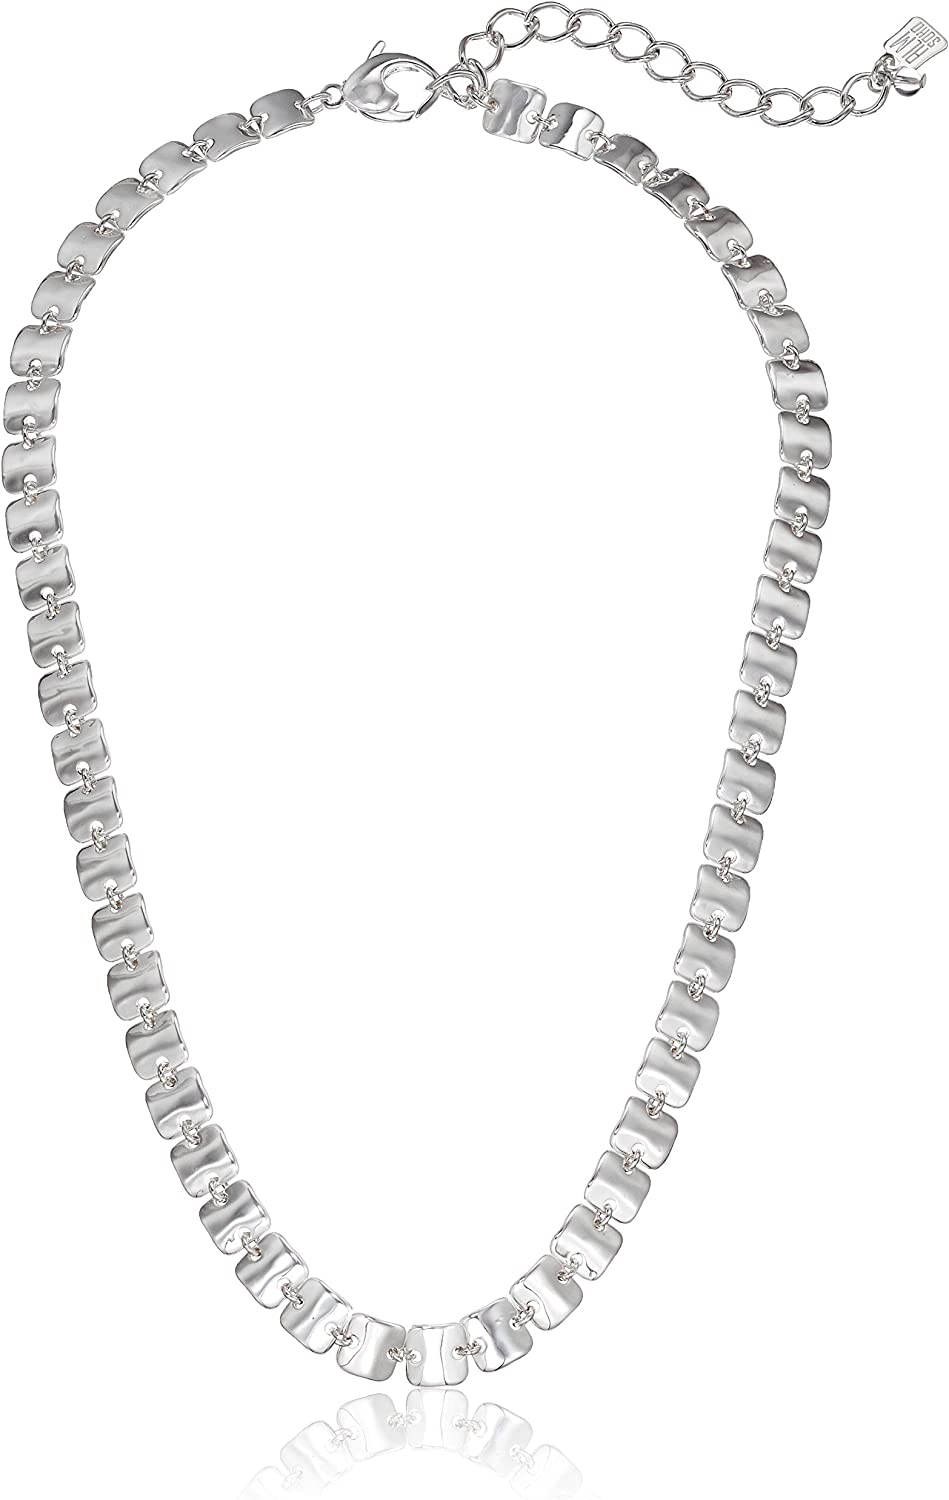 Robert Lee Morris Soho Women's Sculptural Animer and price revision Square Collar Link Nec A surprise price is realized